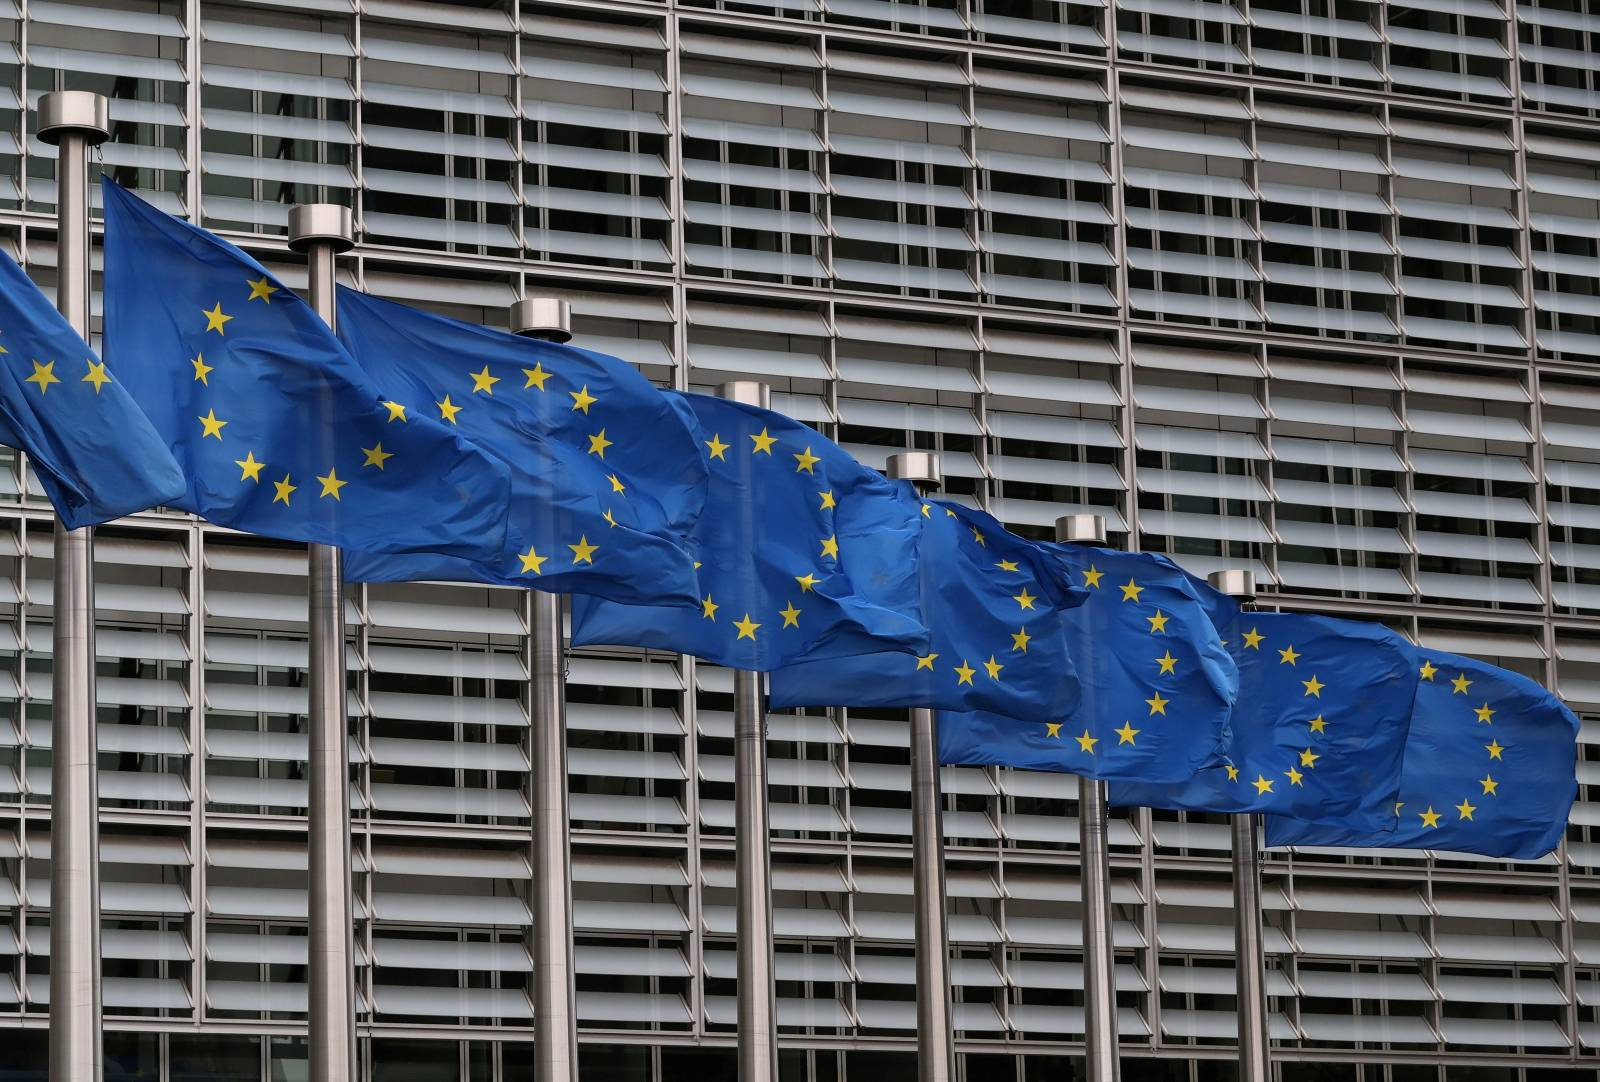 FILE PHOTO: European Union flags fly near the European Commission headquarters in Brussels